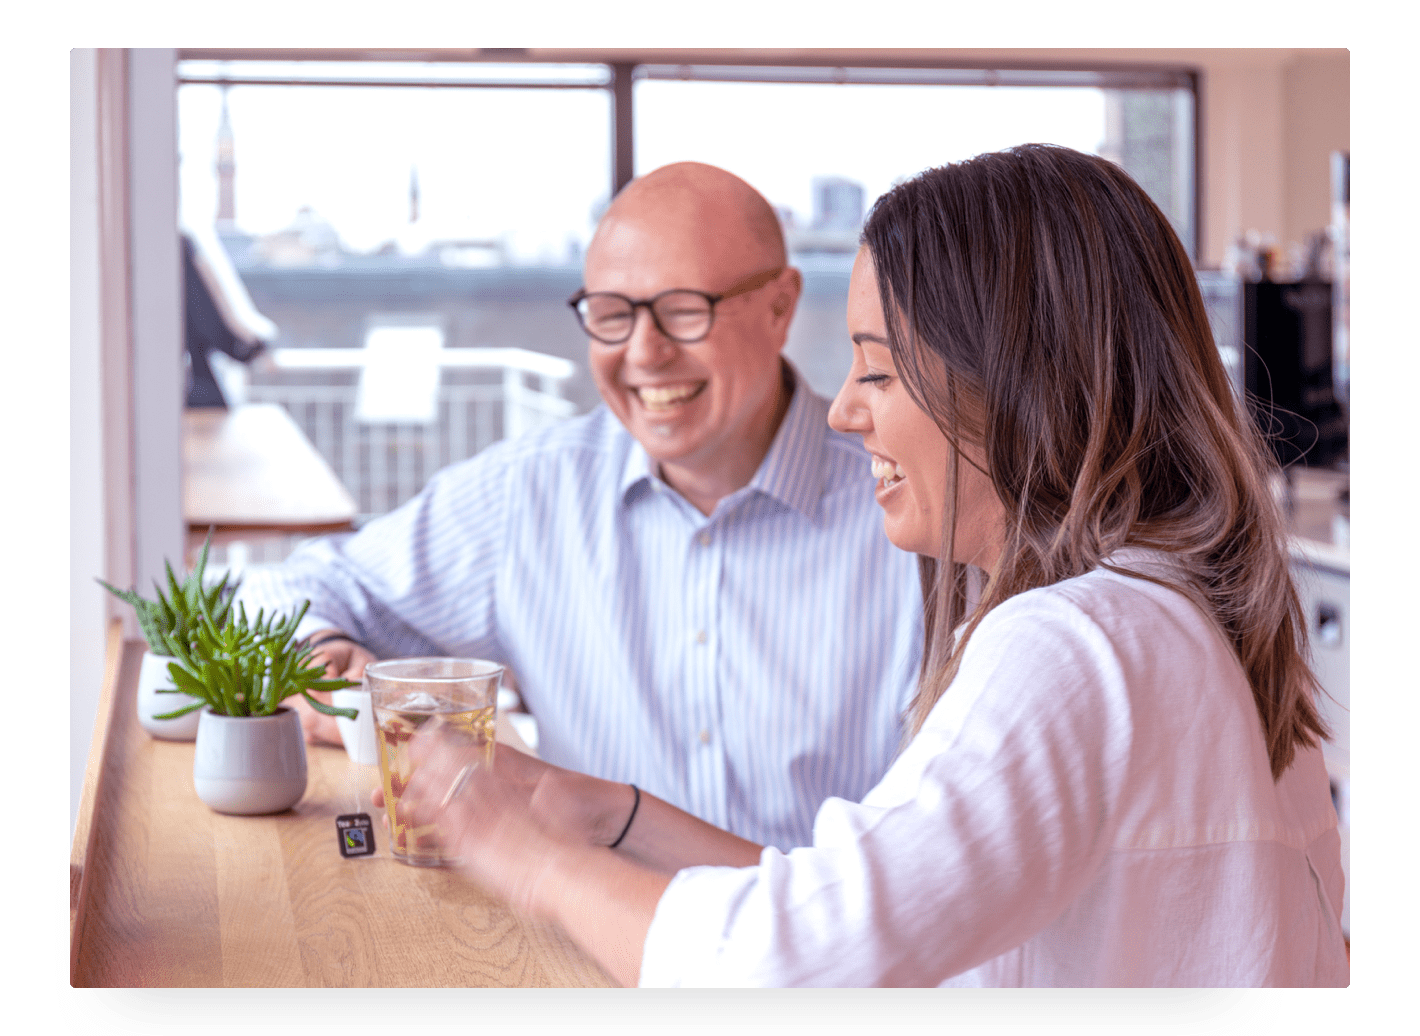 Photo of Trustpilot employees sitting and talking in the office's kitchen